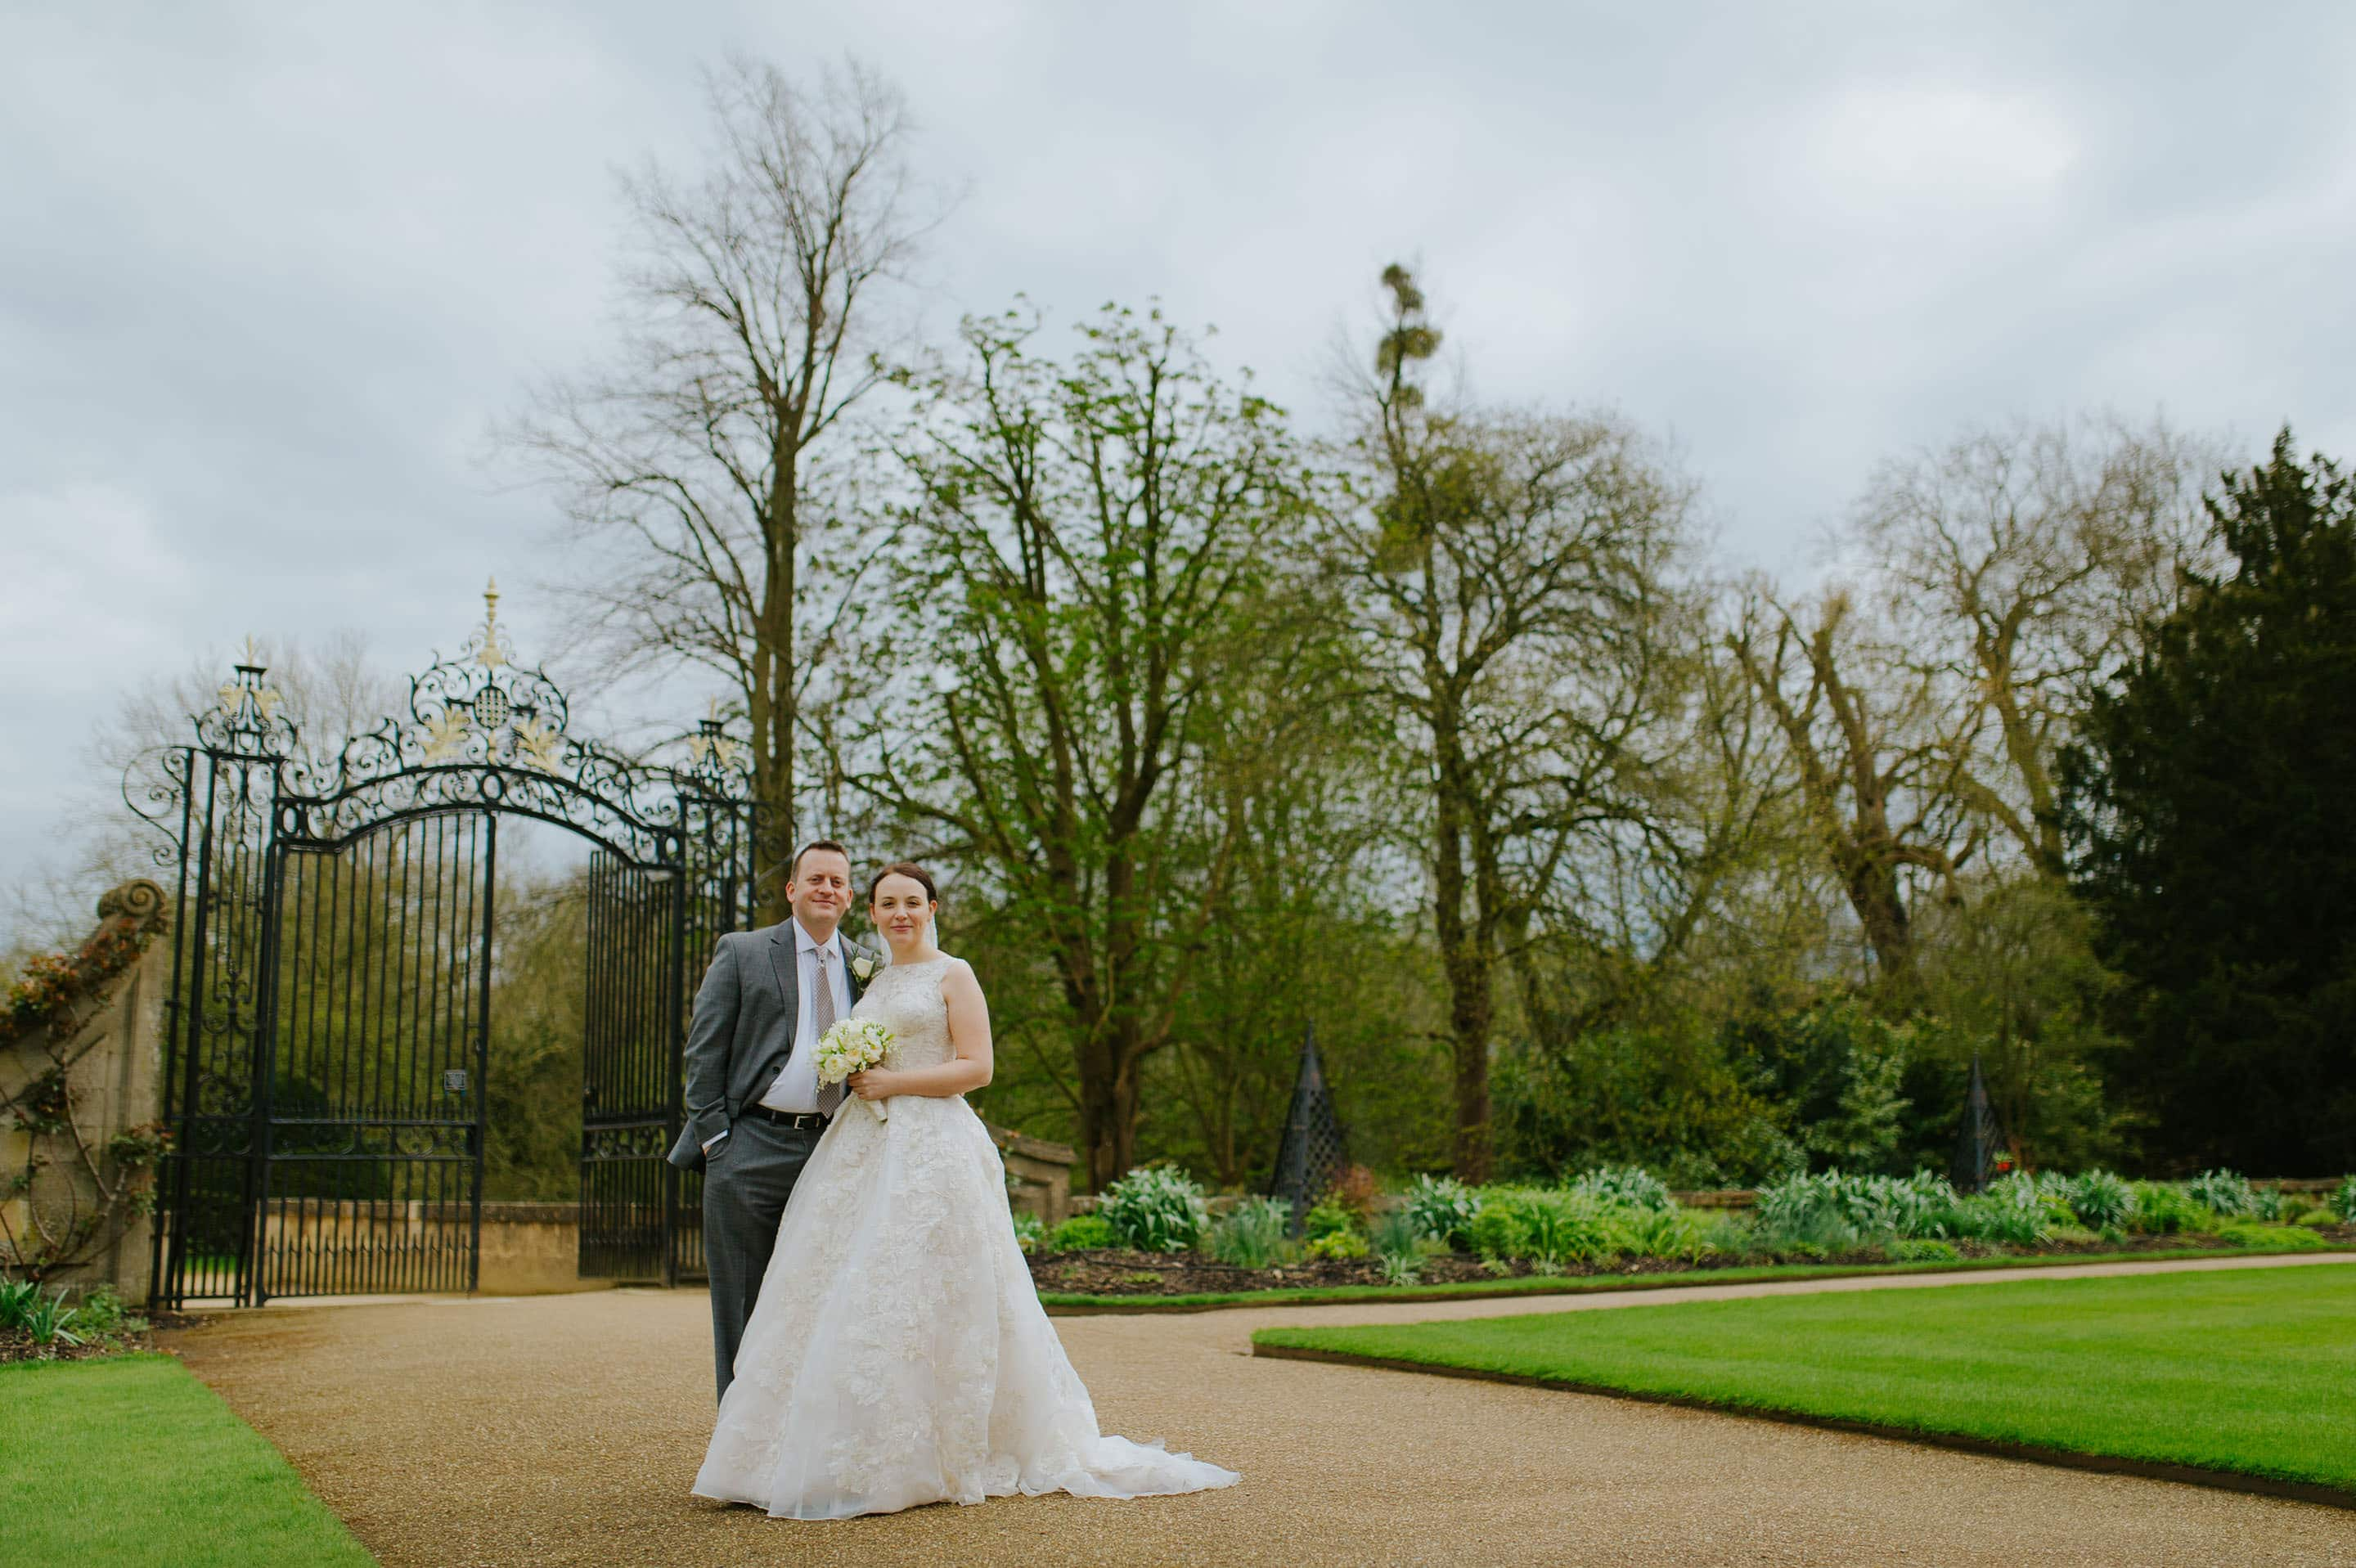 wedding at magdalen college in oxford 14 - Tommie + Virginia | Wedding at Magdalen College in Oxford